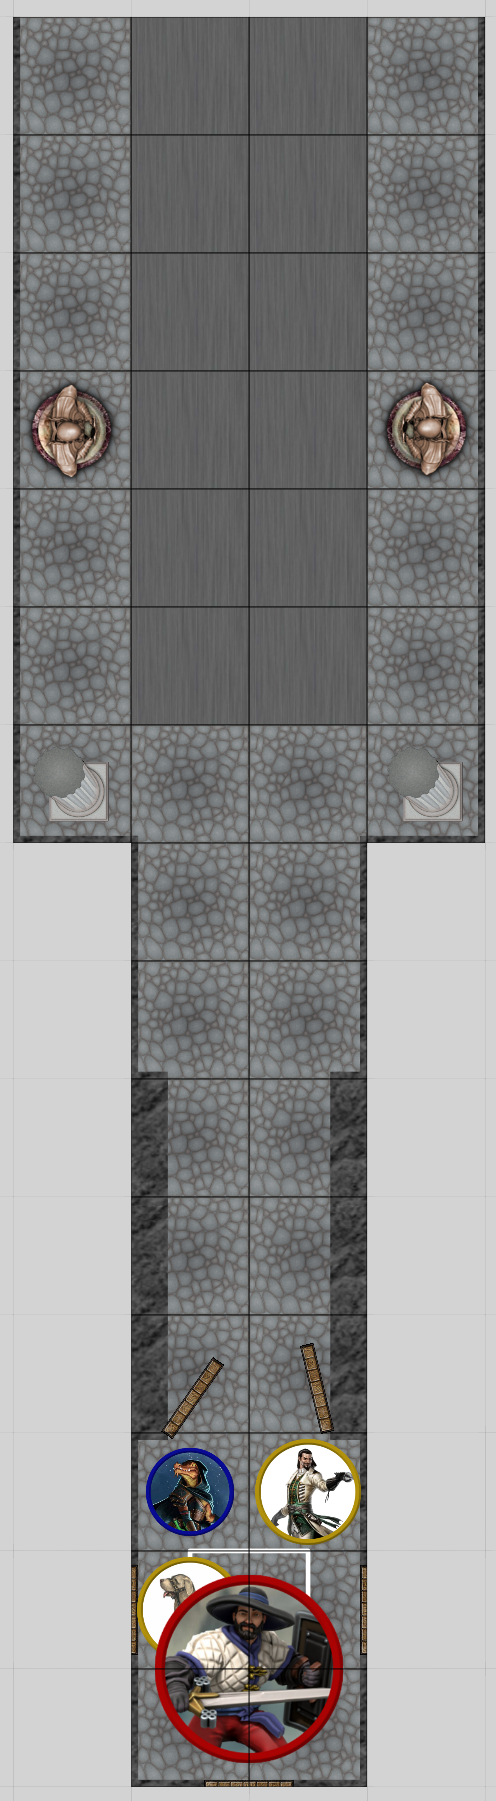 Under the Gate of Scales_Rooms One and Two.png